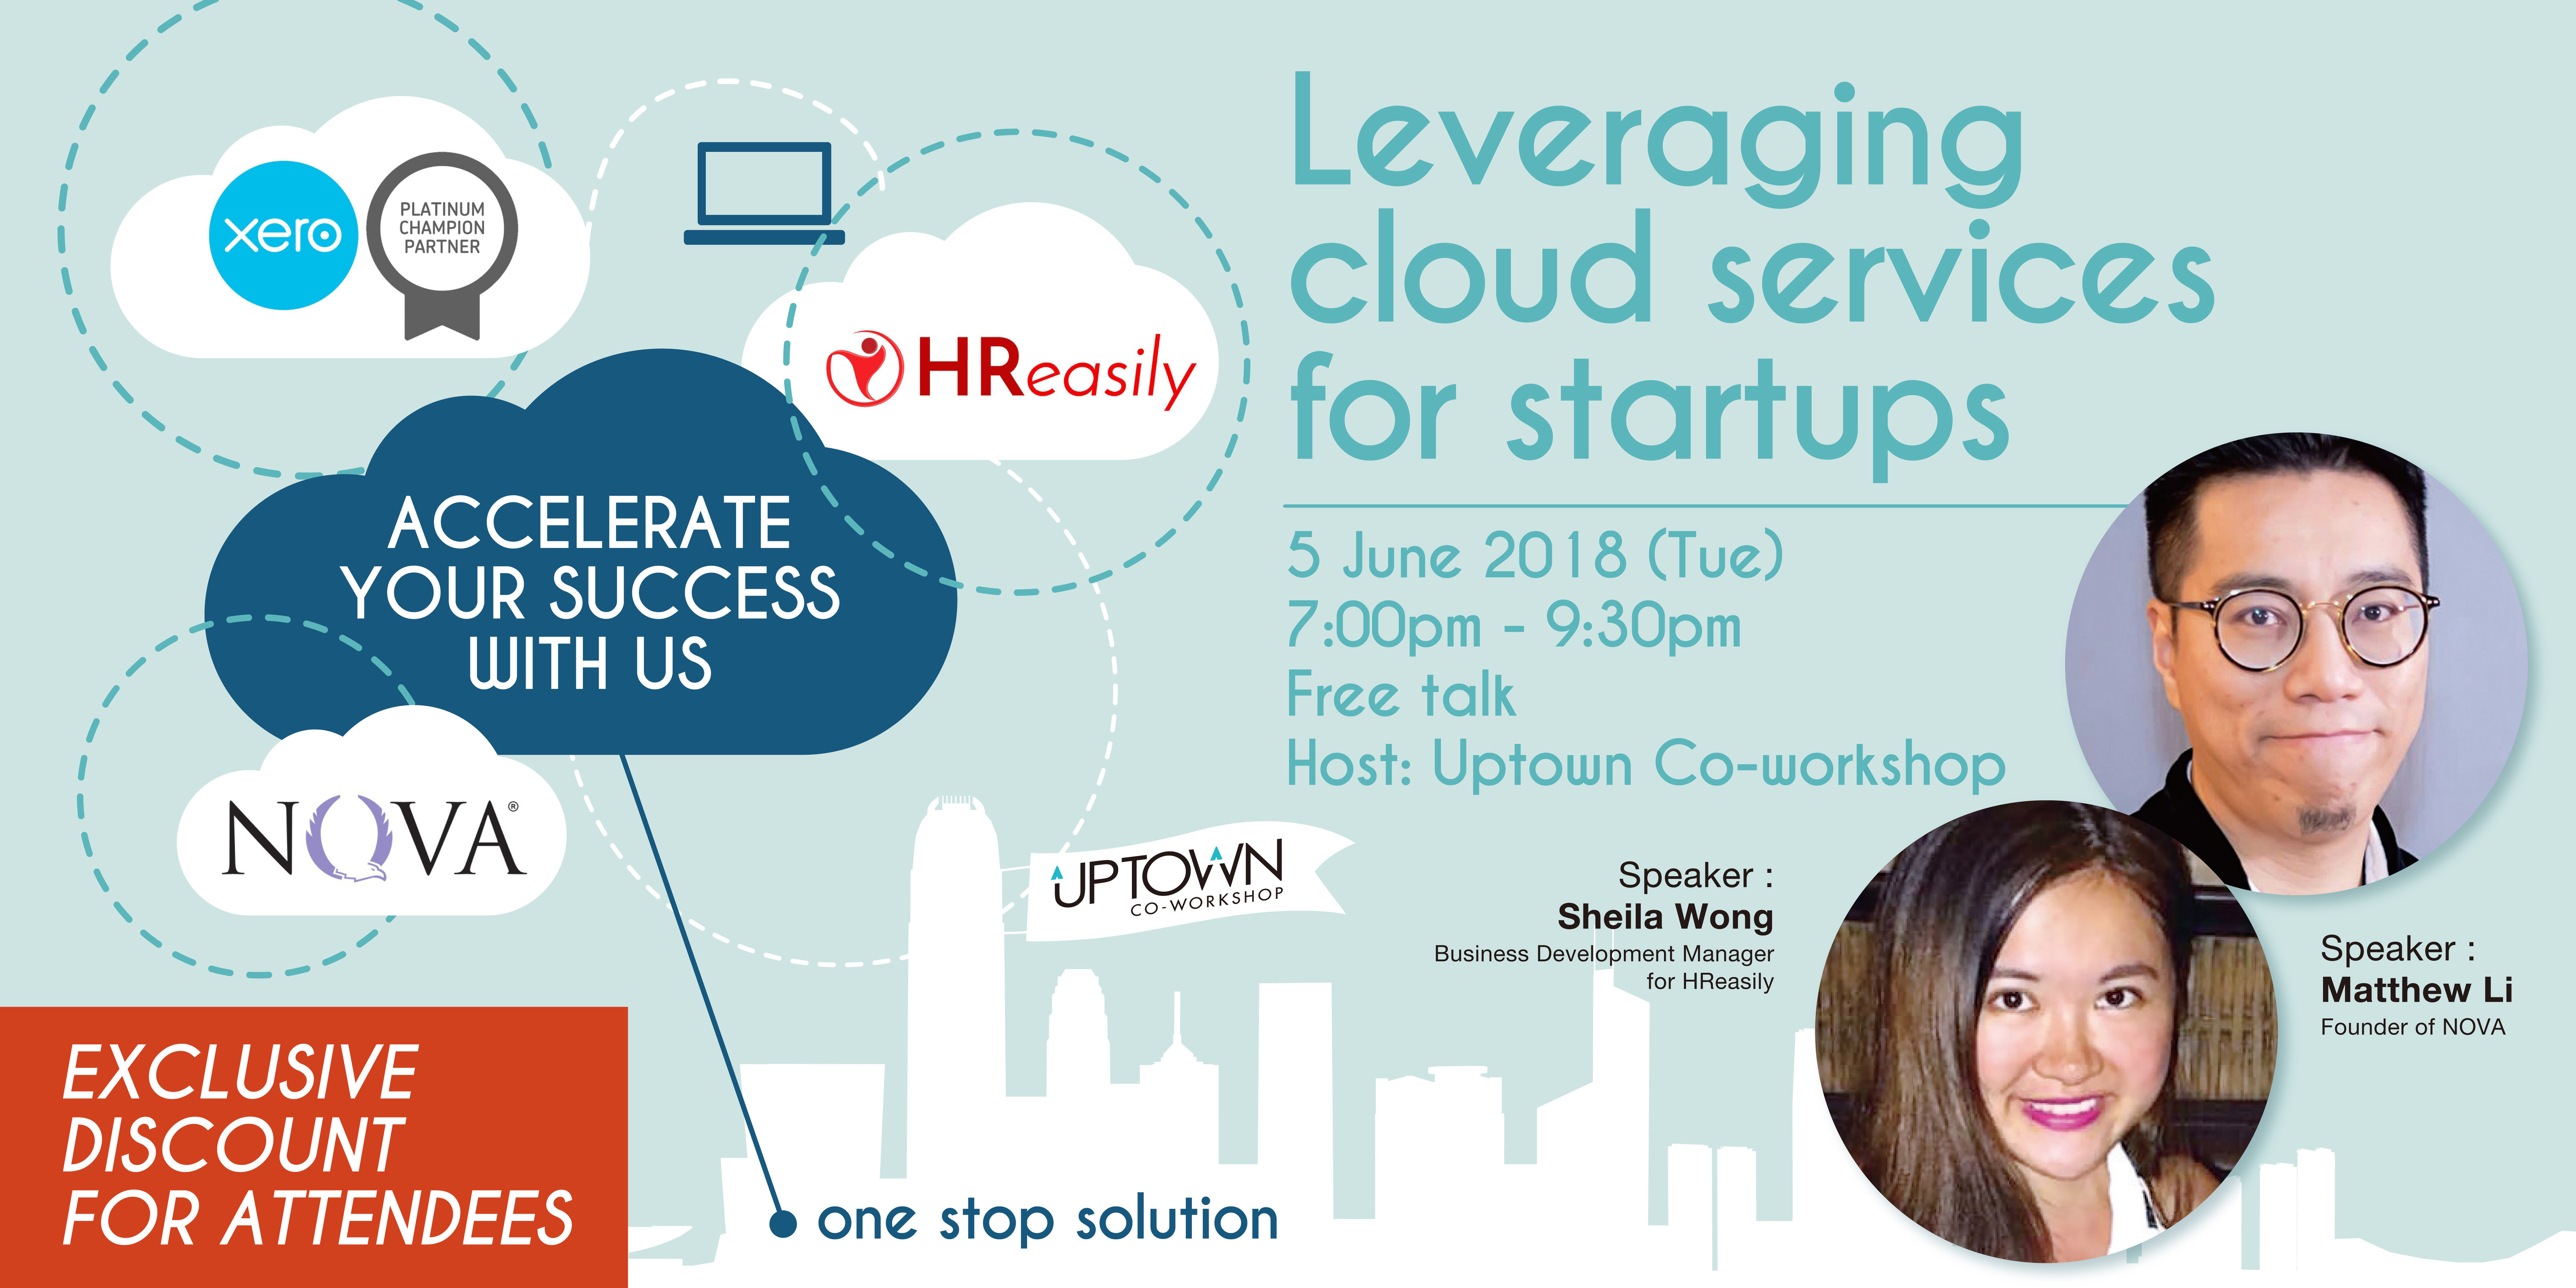 Leveraging cloud services for startups